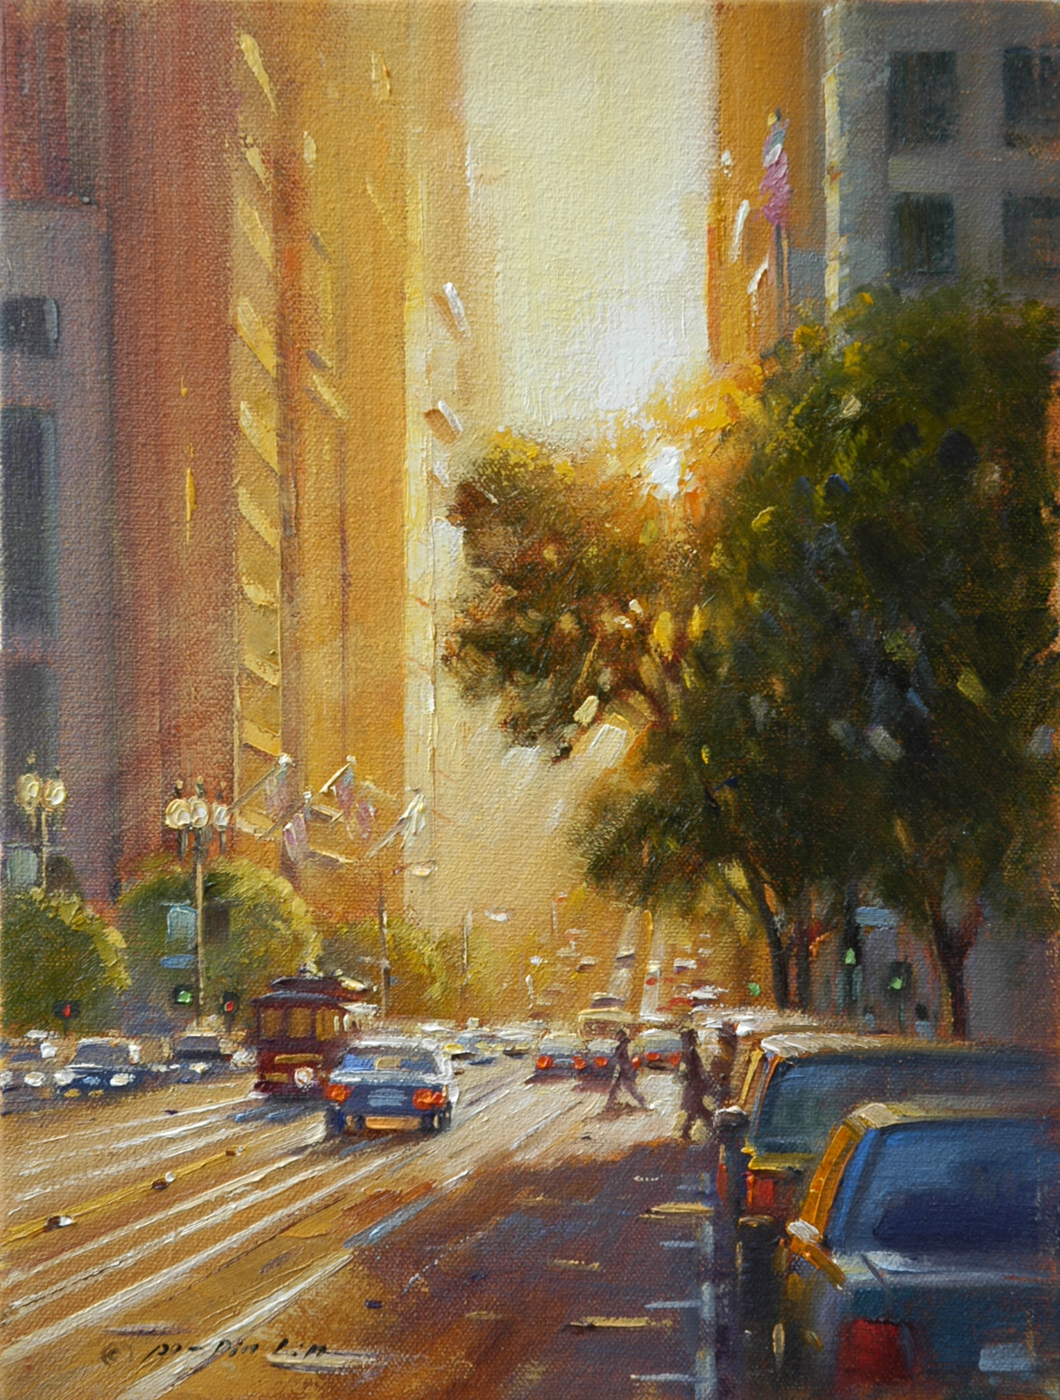 City Twilight SF, 12x9 (SOLD)